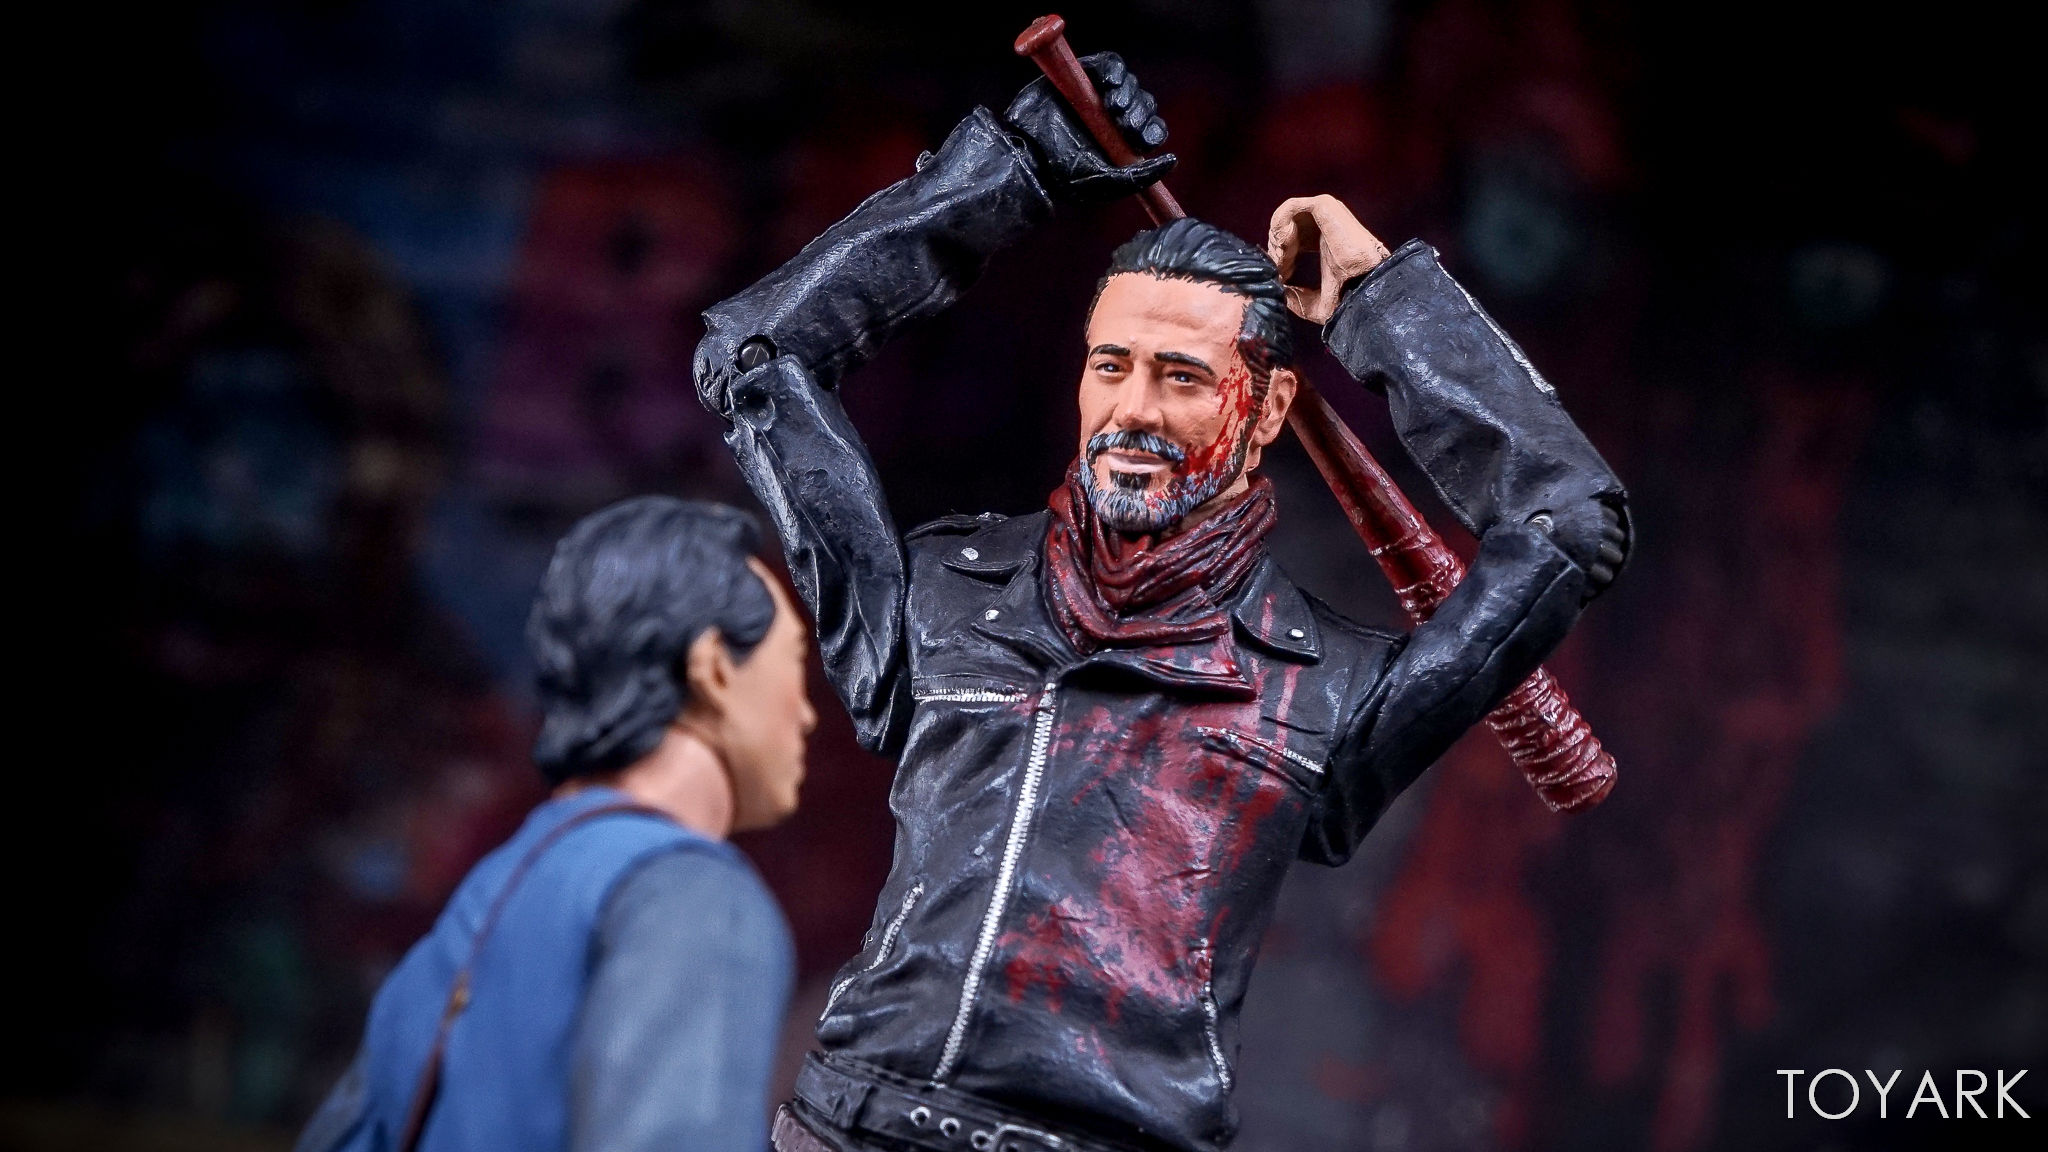 http://news.toyark.com/wp-content/uploads/sites/4/2017/09/Walking-Dead-Glenn-and-Negan-Set-033.jpg